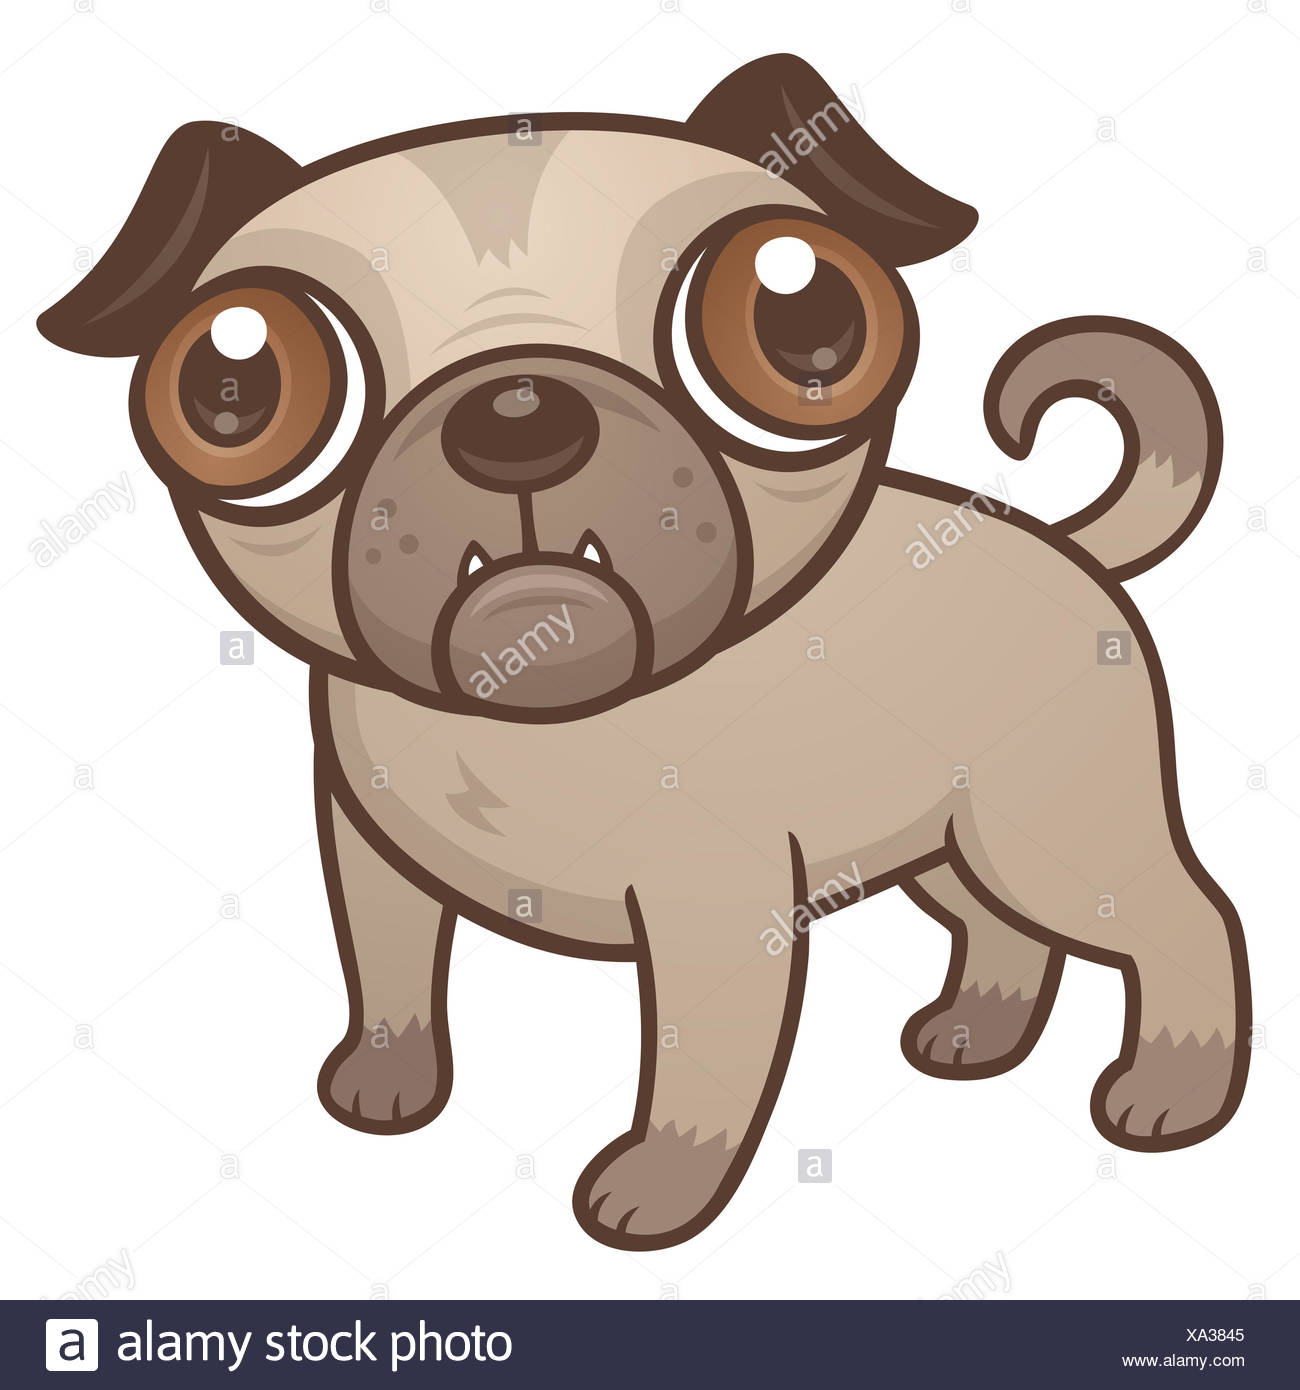 Pug Drawing Imágenes De Stock & Pug Drawing Fotos De Stock - Alamy